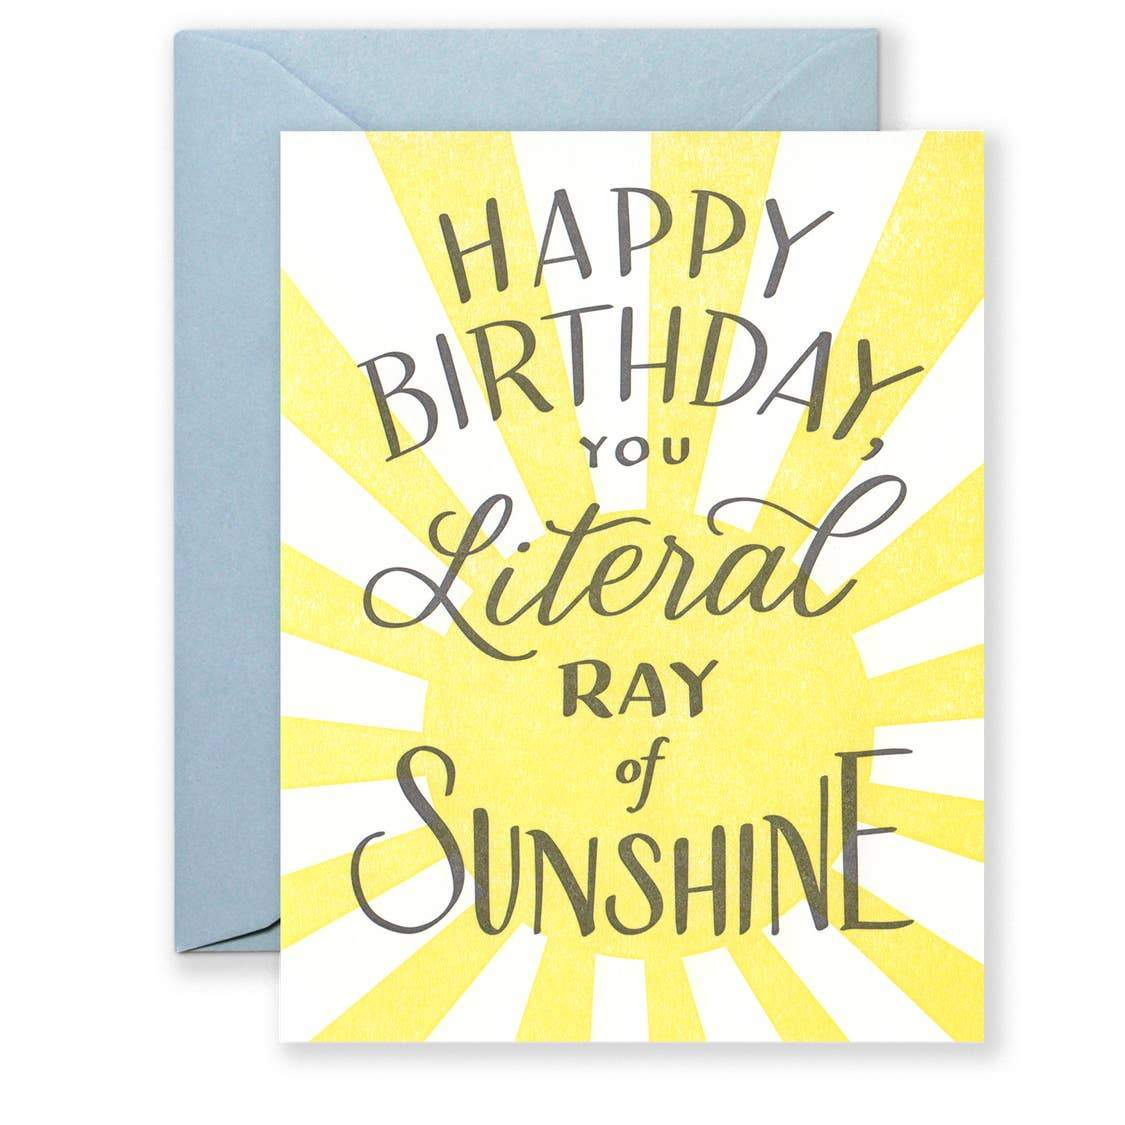 Happy Birthday Sunshine Card - Urban Sprouts